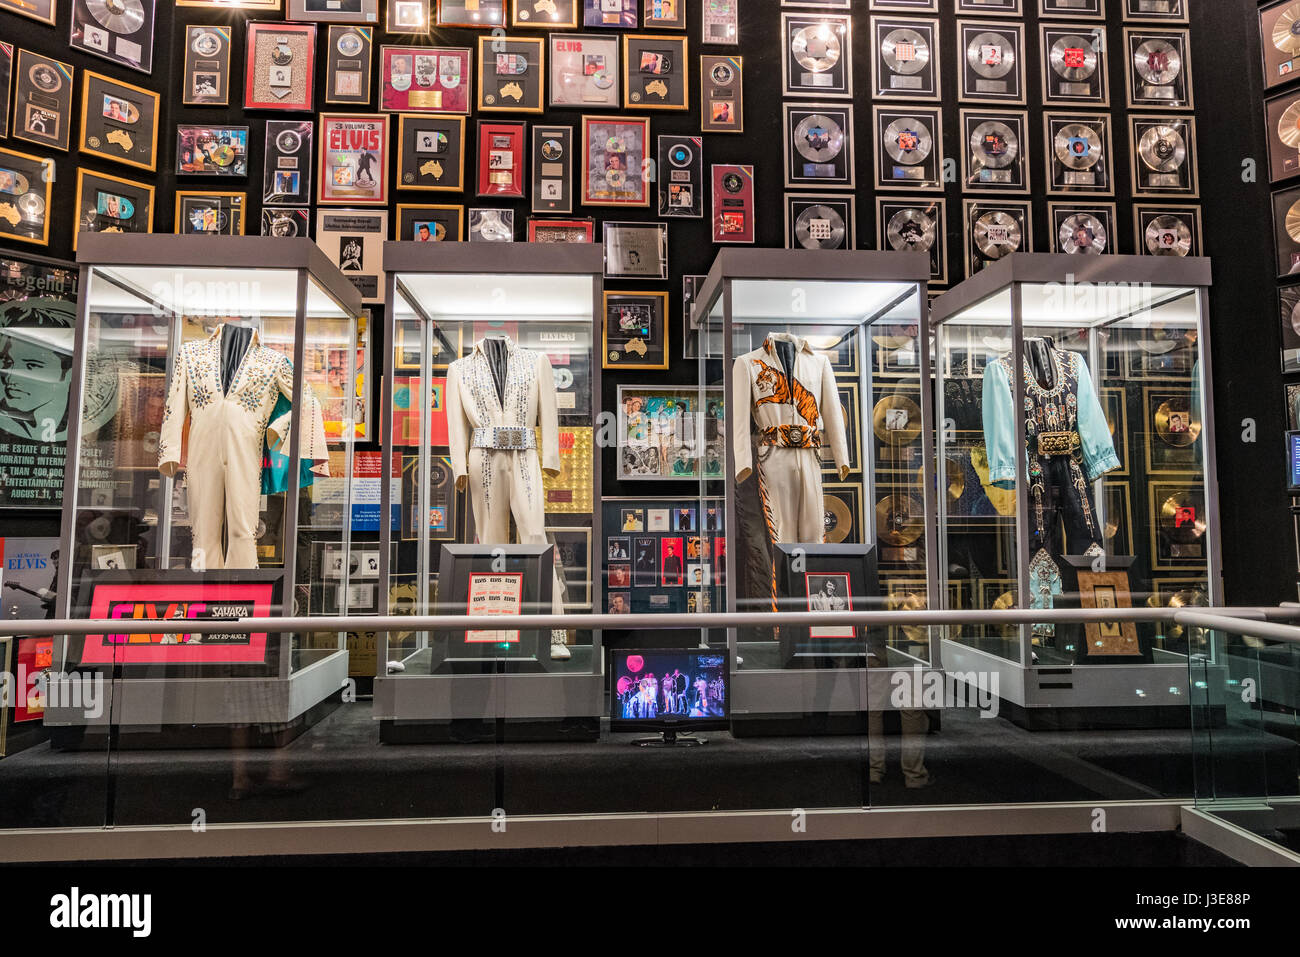 Display of Elvis costumes at Graceland, Memphis - Stock Image